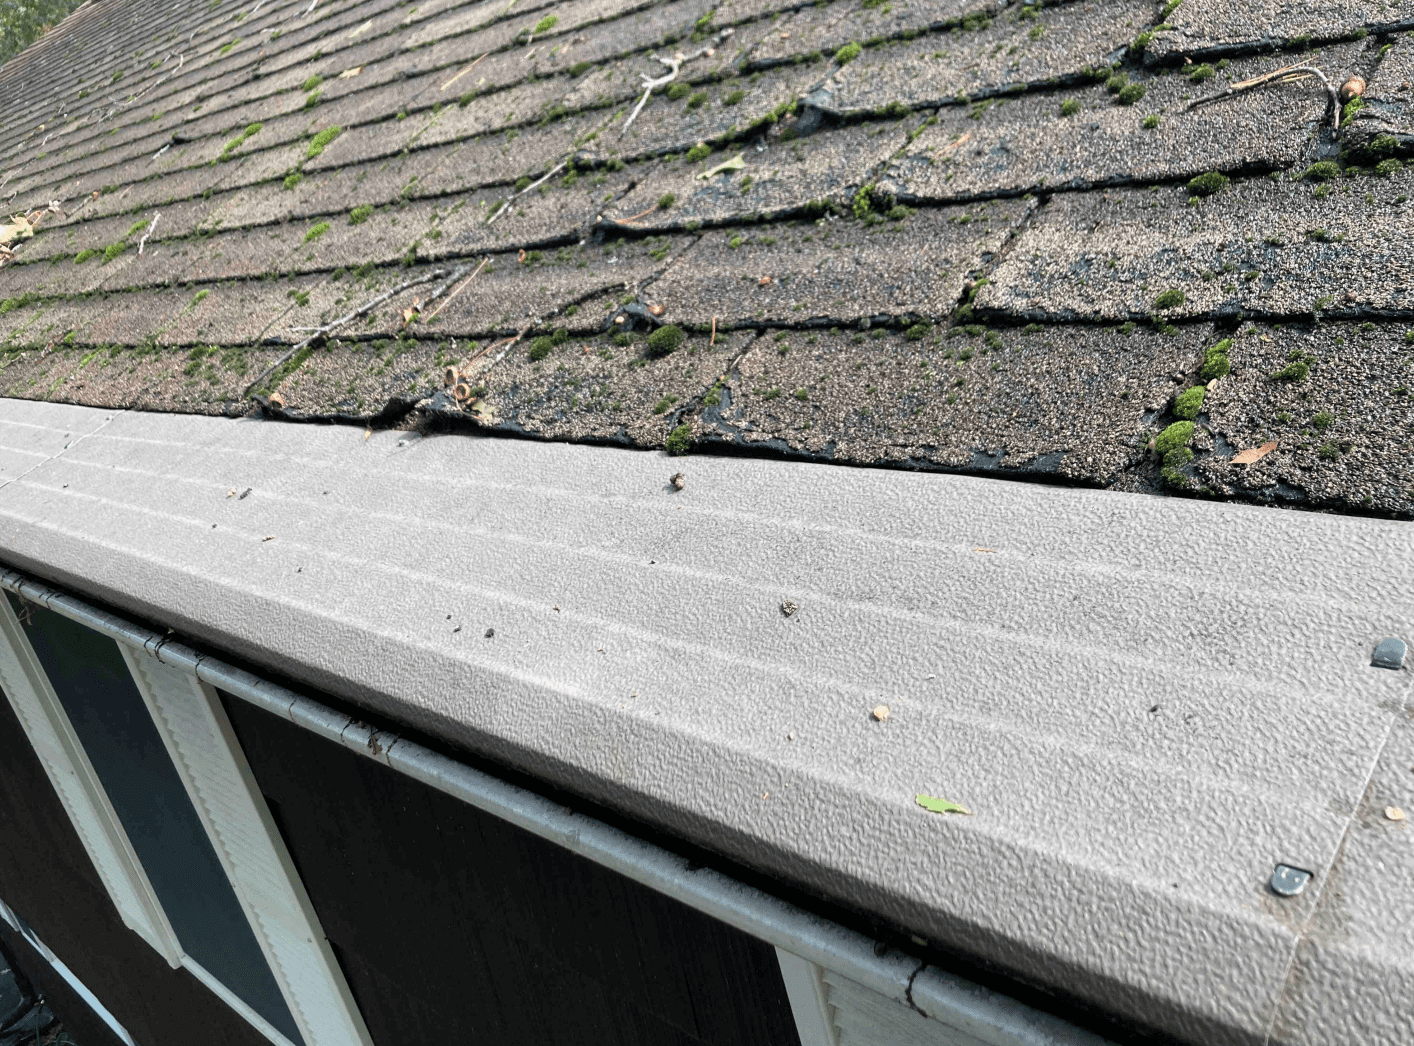 Crumbling asphalt shingles bordering the gutter cover. This is a recipe for disaster.